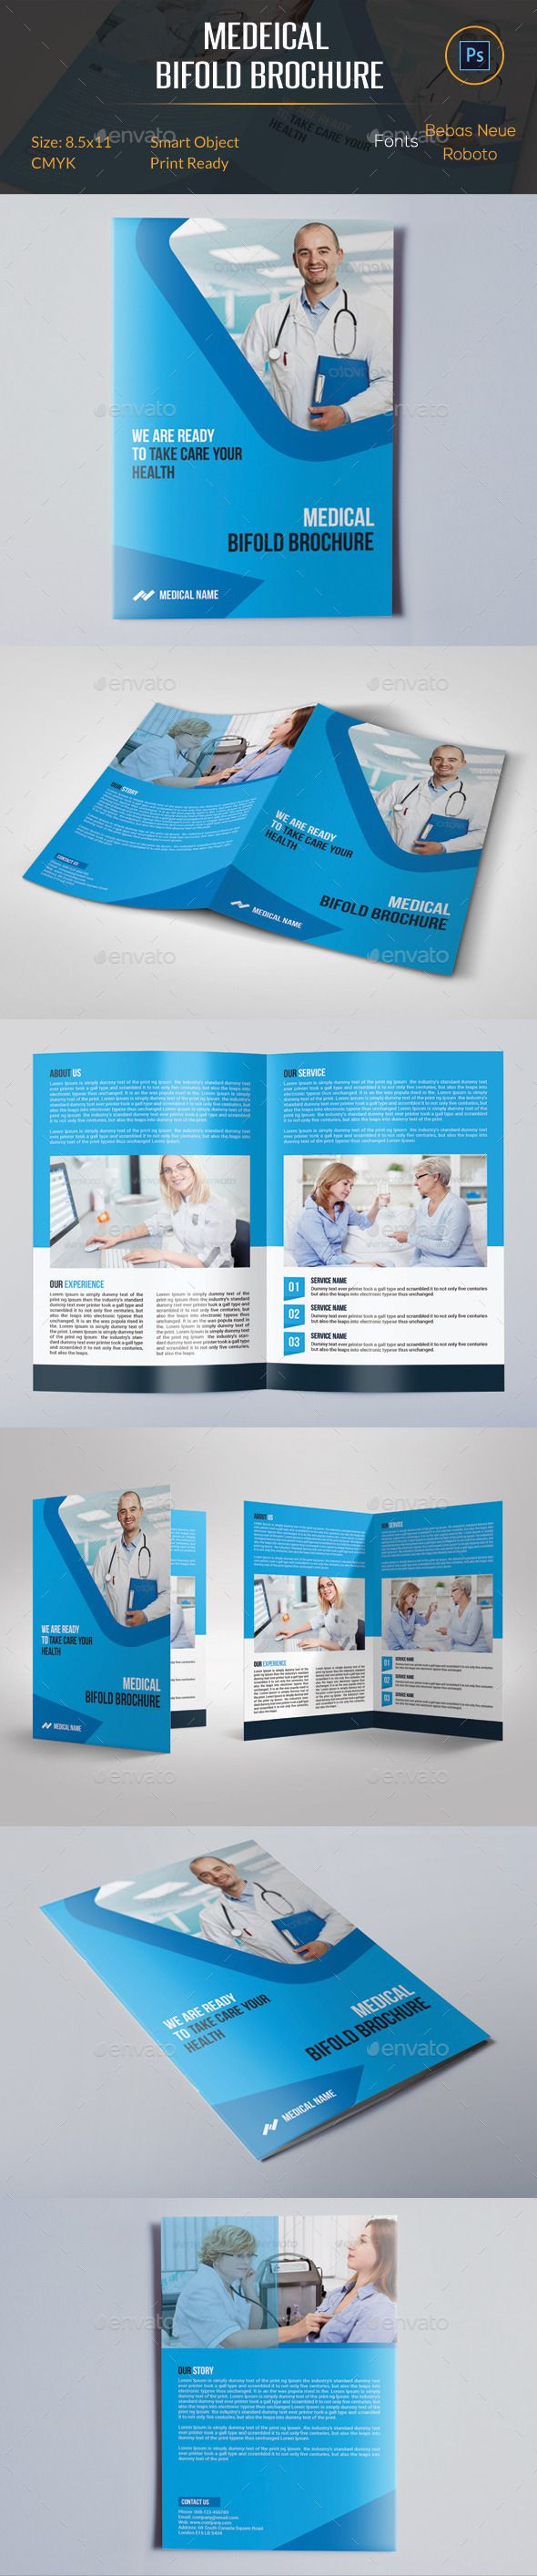 Medical Bifold Brochure  Brochures Medical And Brochure Template